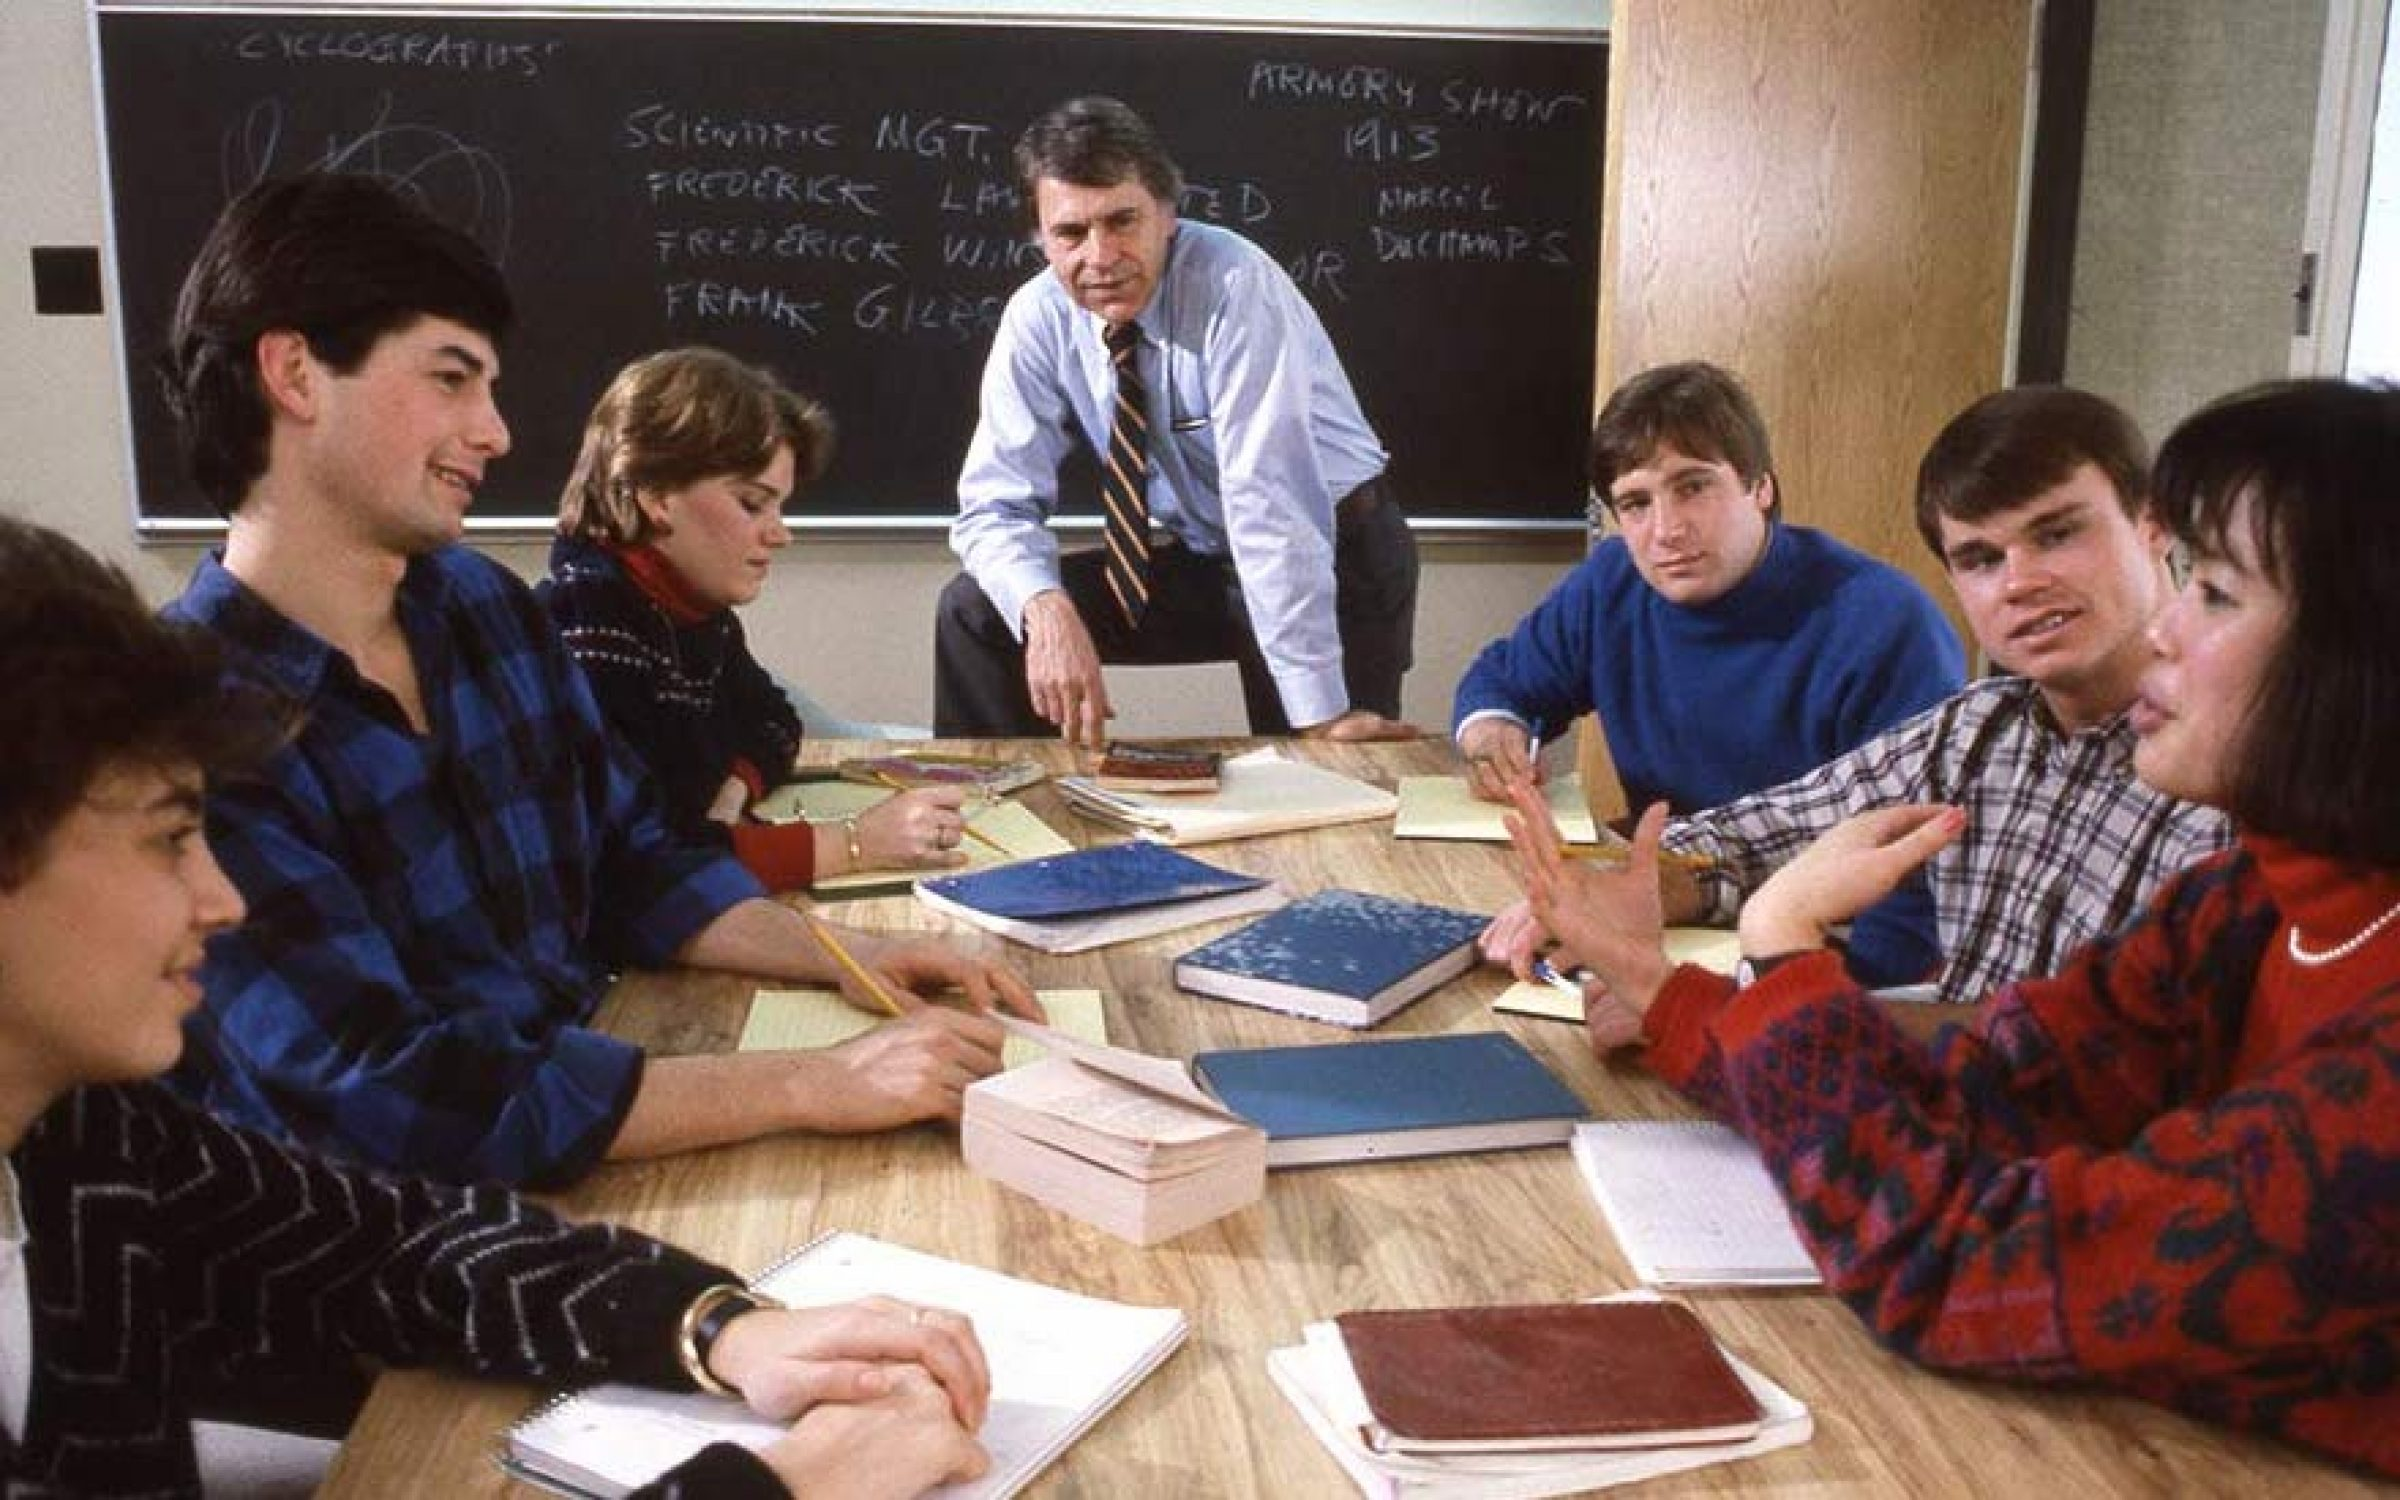 Christopher Lasch, centre, teaching a class at the University of Rochester, USA. Credit: University of Rochester.